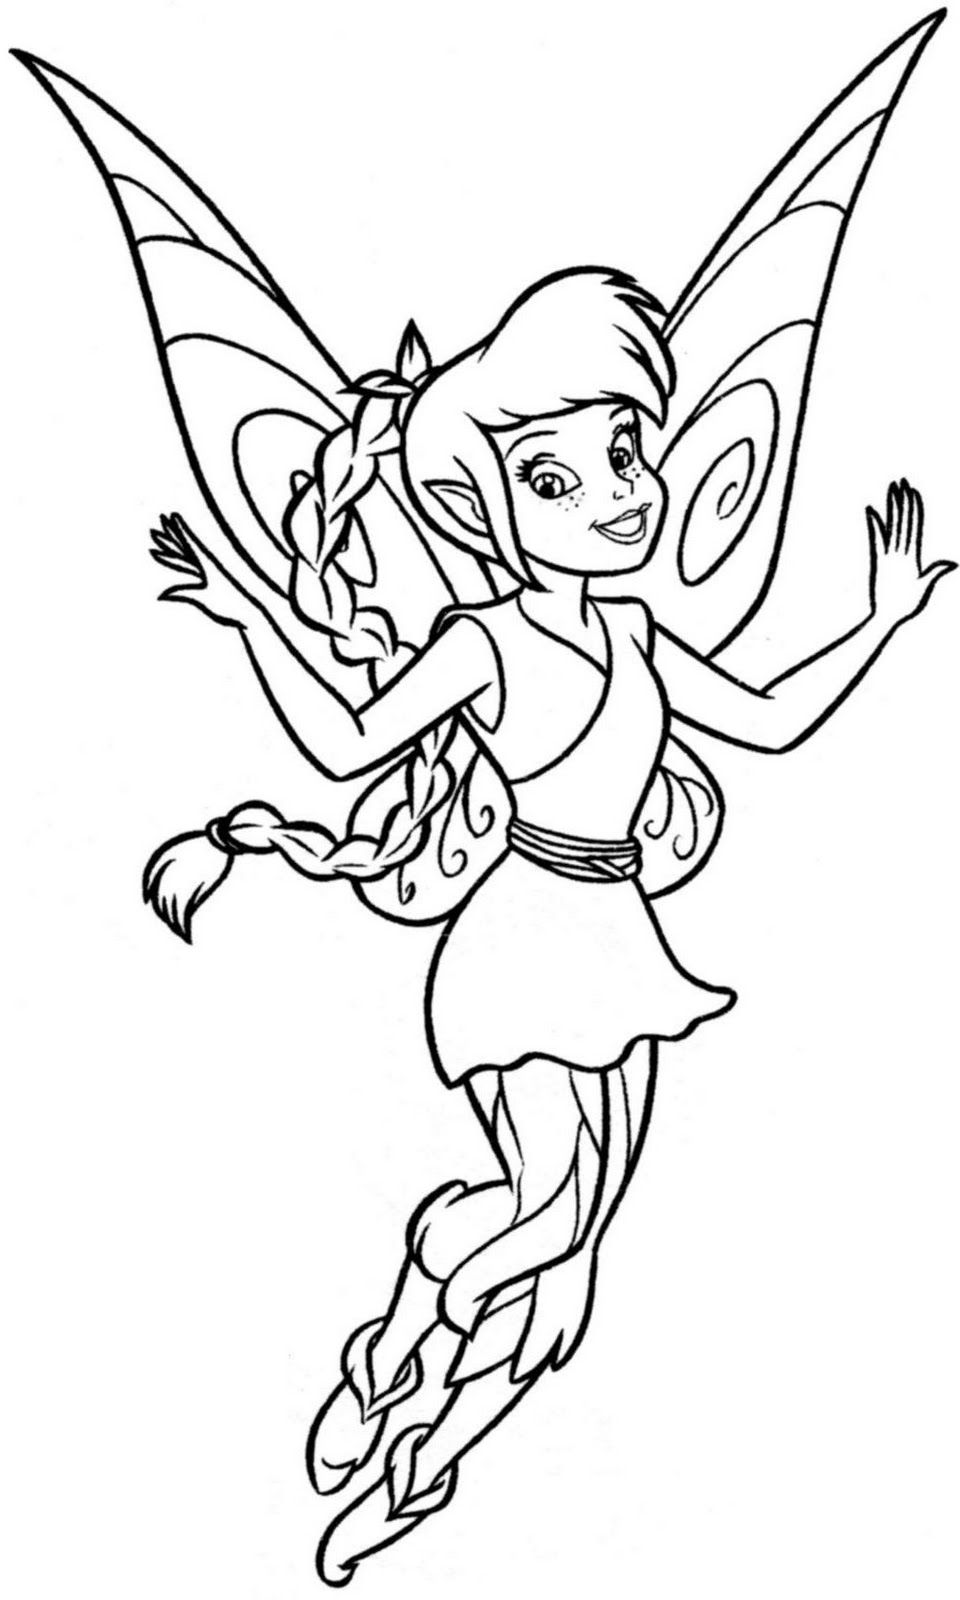 coloring fairies for kids free printable fairy coloring pages for kids kids coloring fairies for